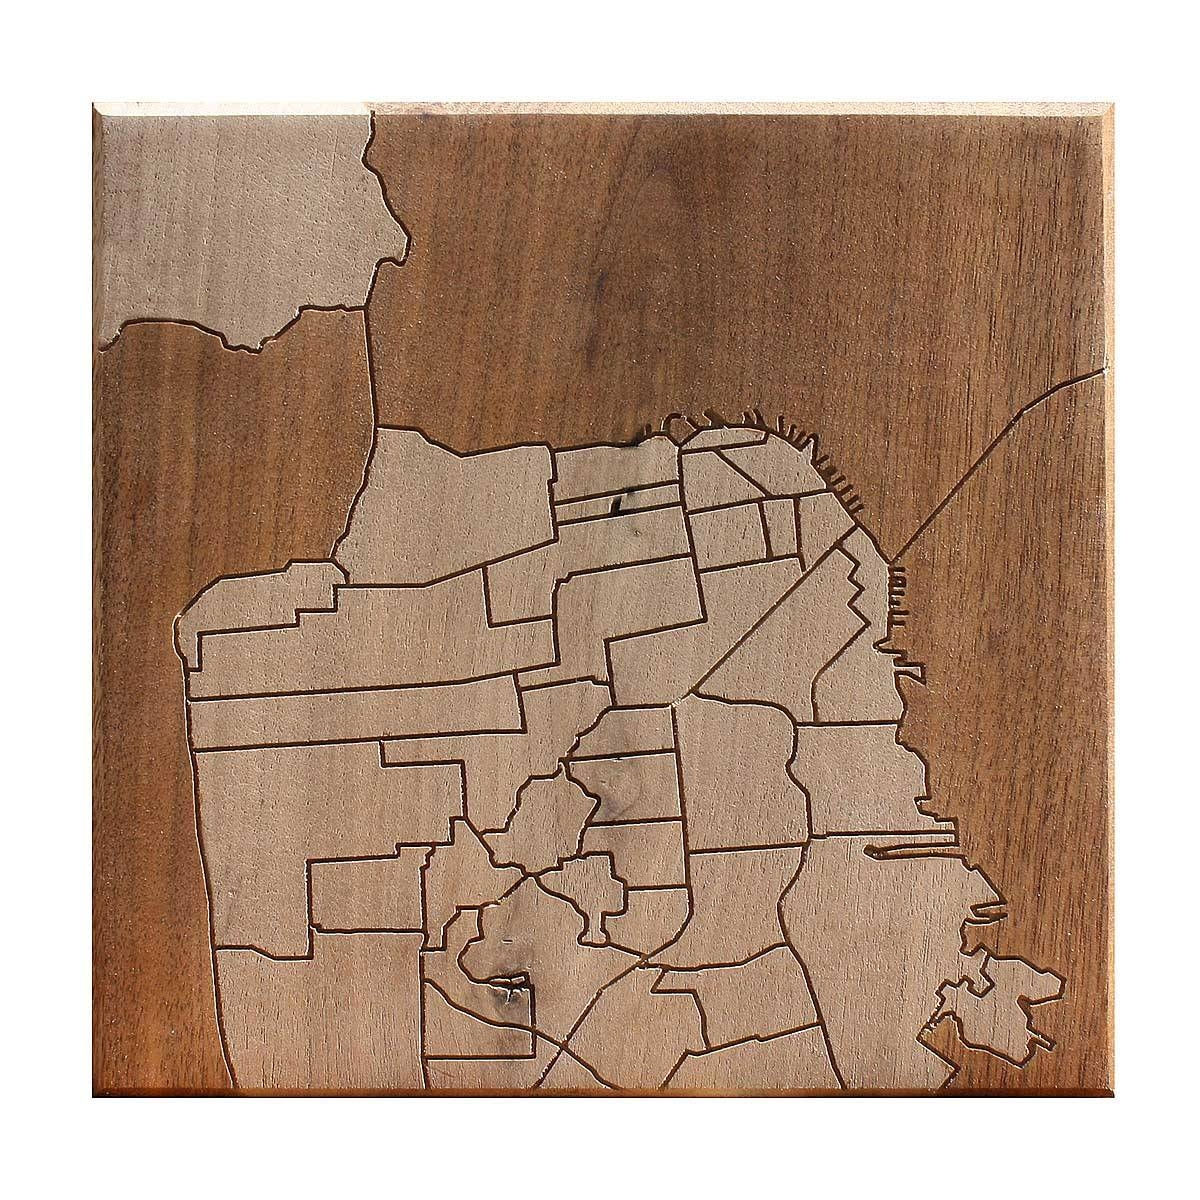 San Francisco Neighborhood Map Wooden Routing | California, San Inside Most Recent San Francisco Map Wall Art (View 9 of 20)